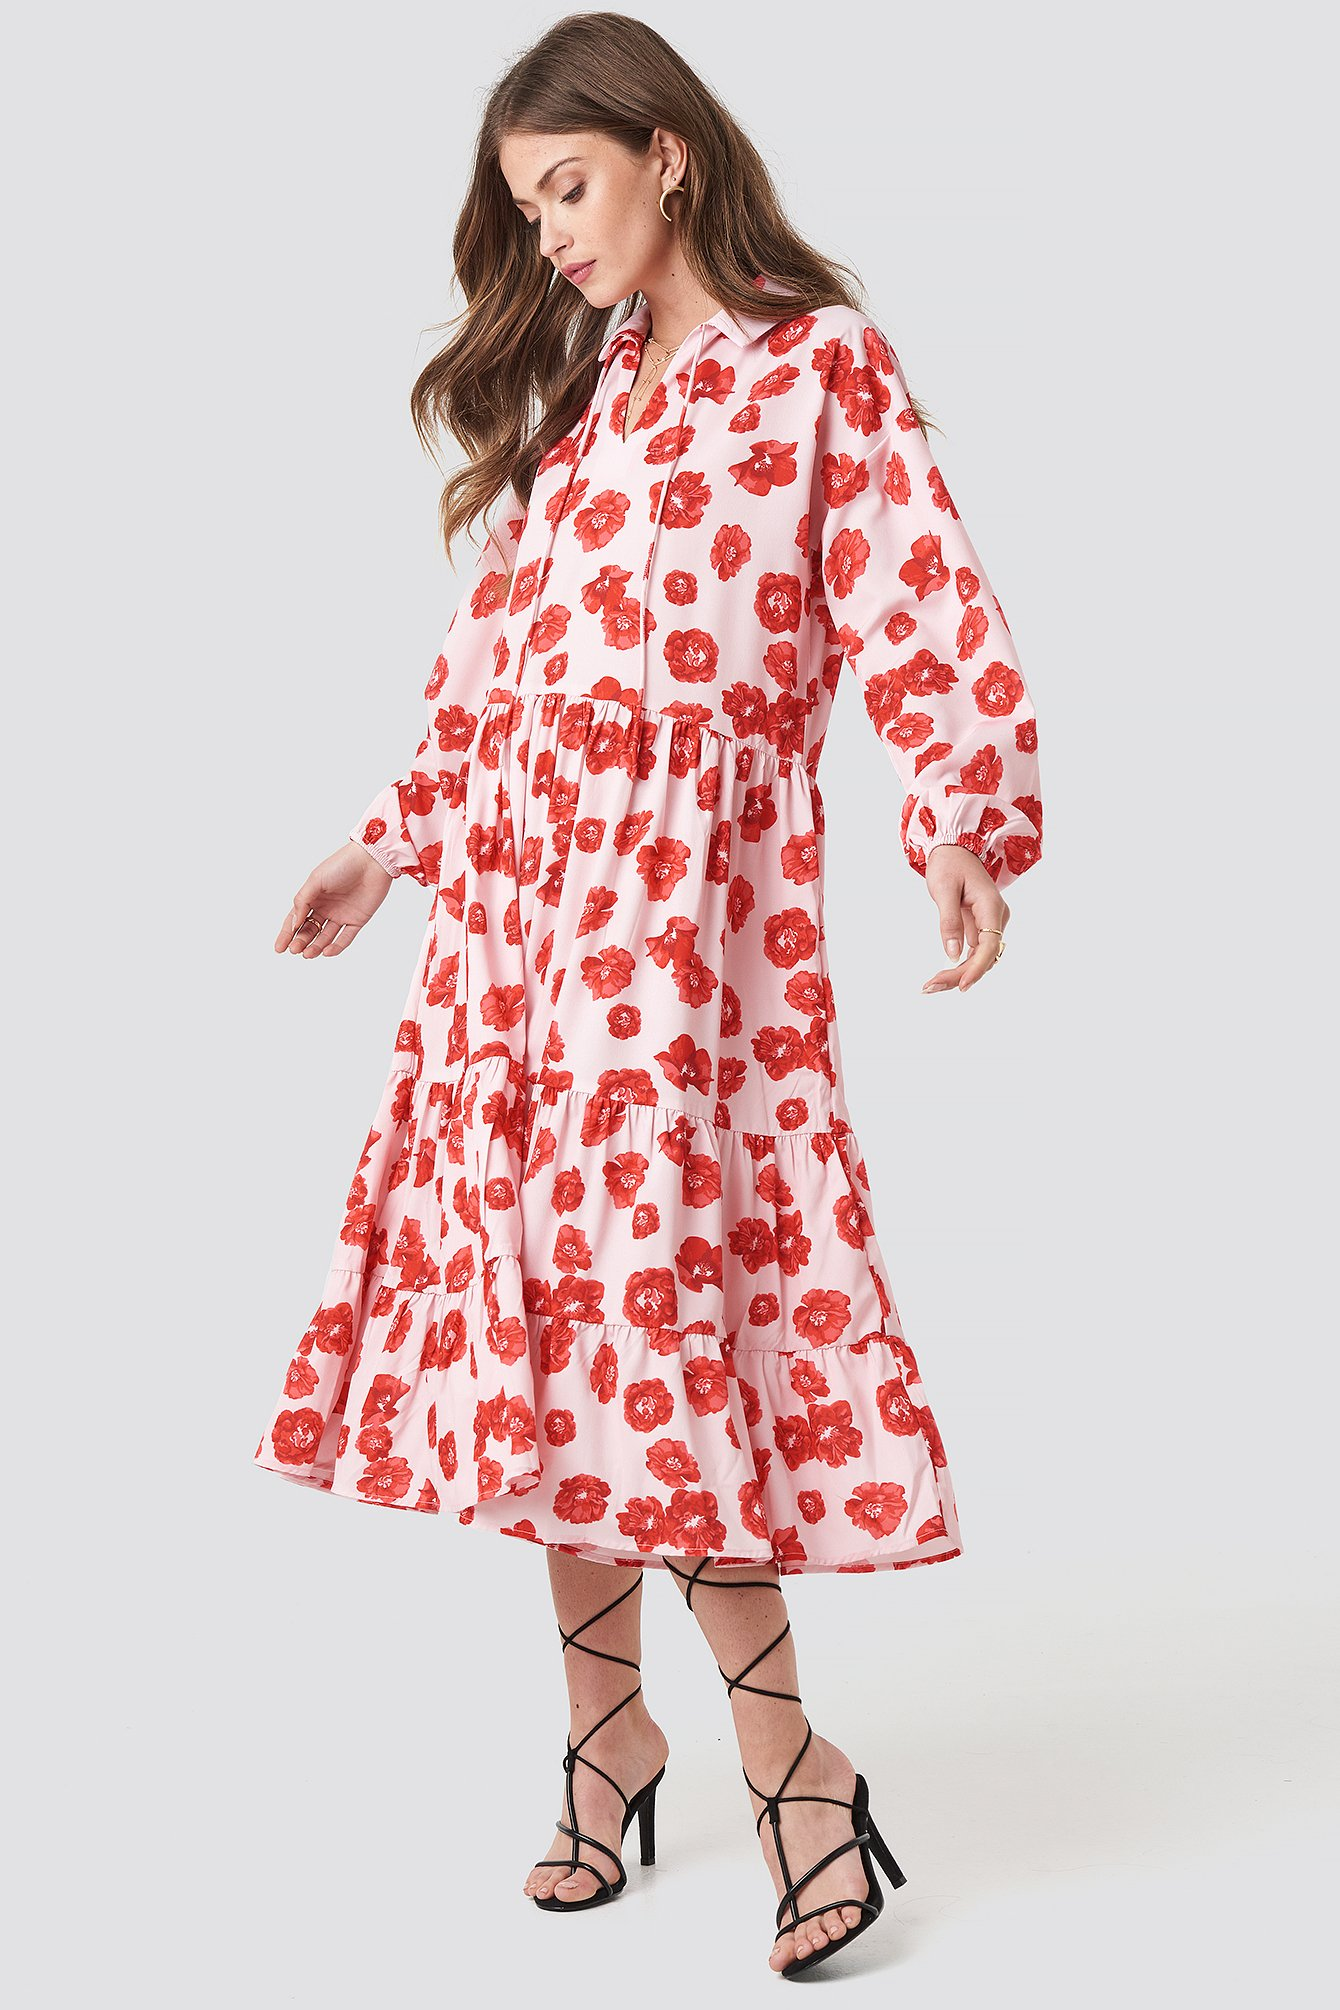 na-kd boho -  Tiered Detail Balloon Sleeve Dress - Pink,Red